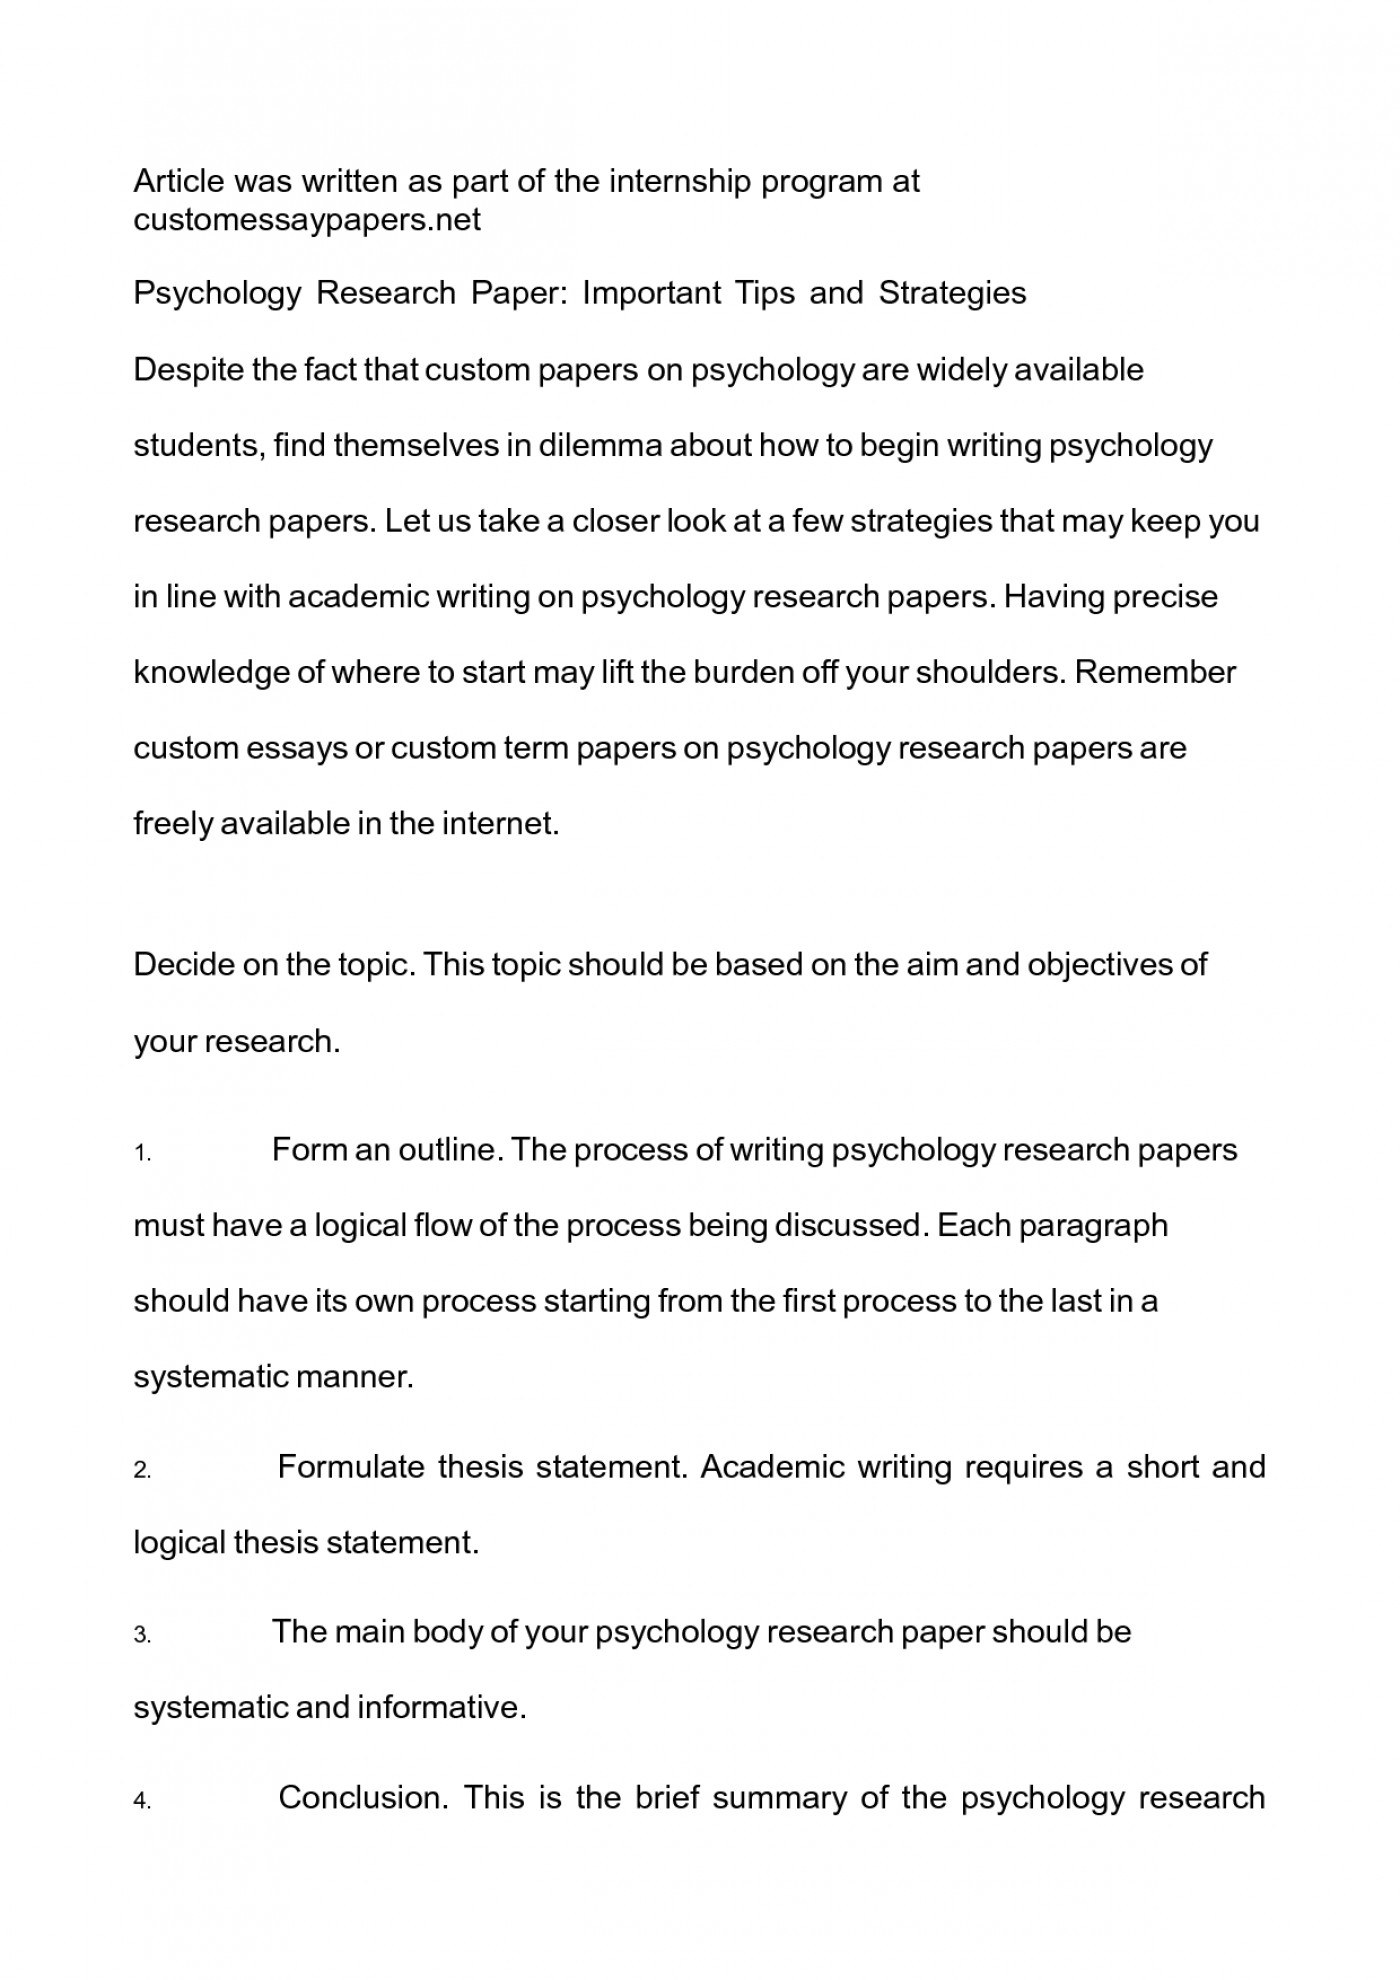 024 Psychology Research Paper Writing Archaicawful Services In Delhi Service Reviews 1400